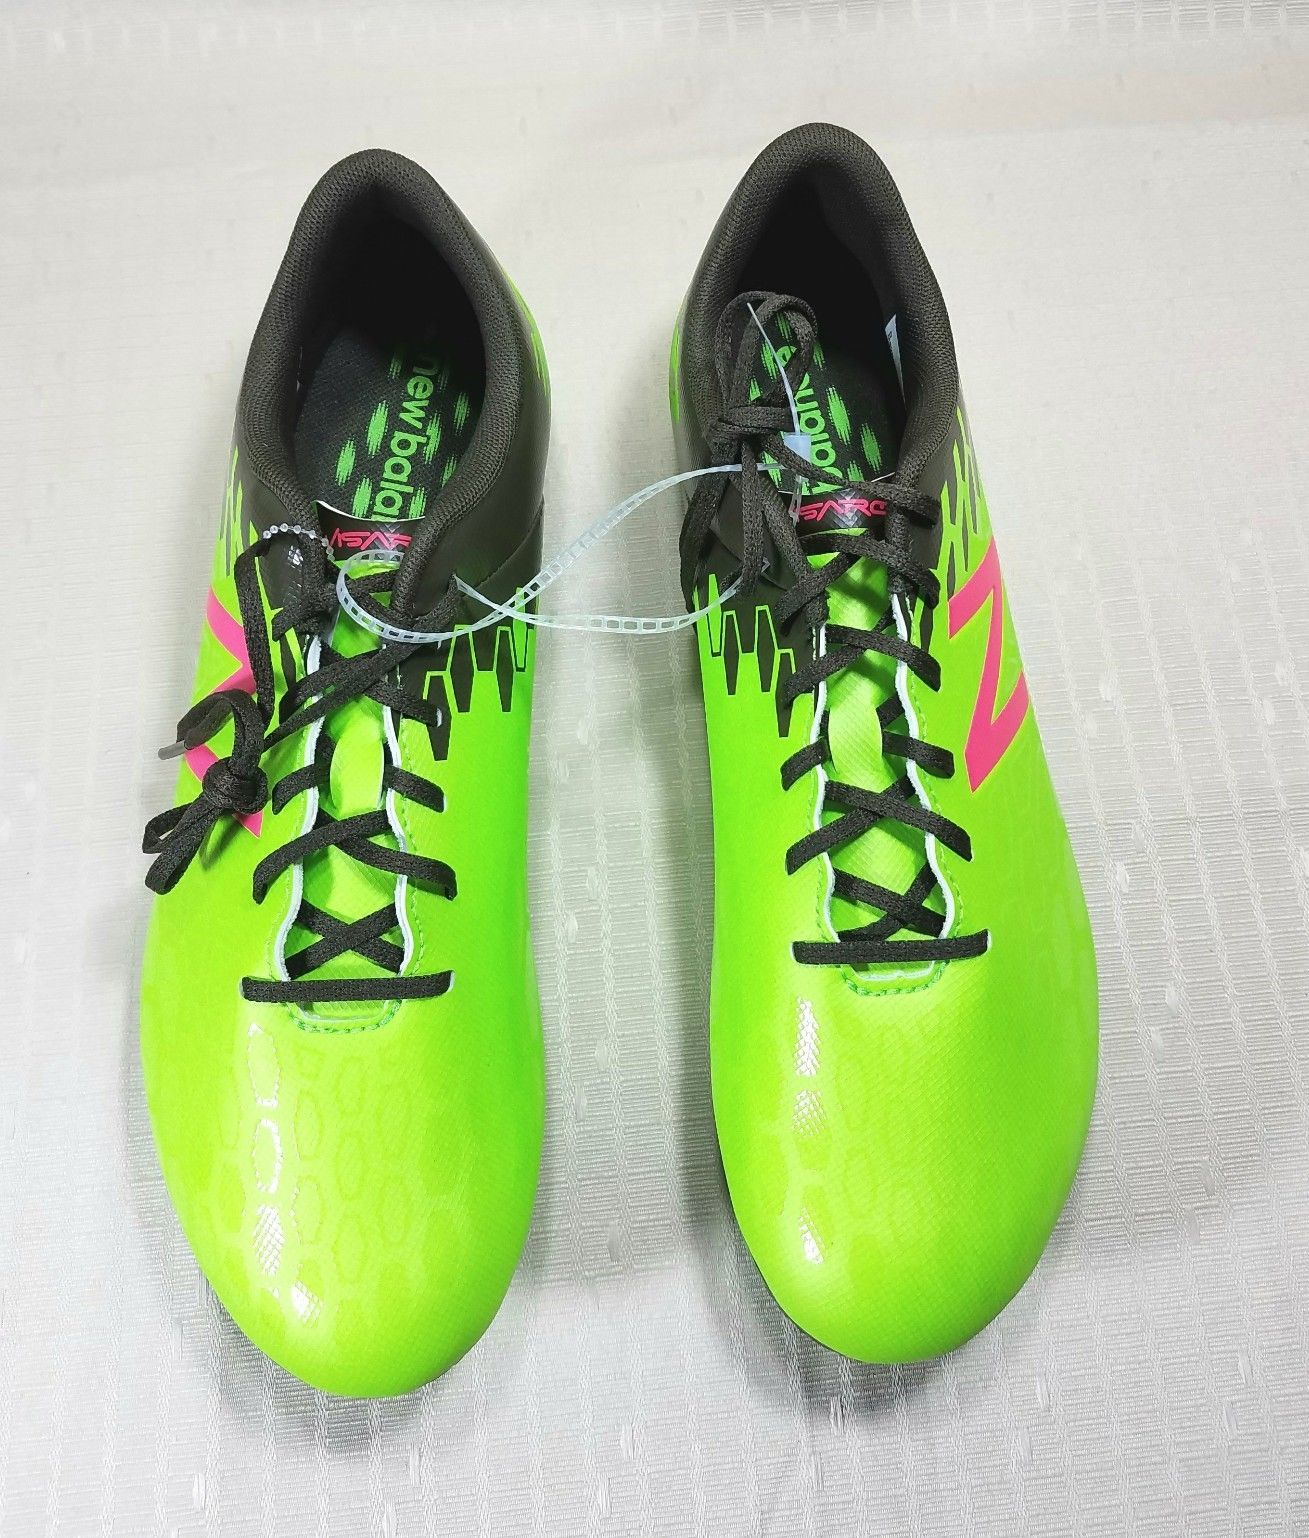 3e751573bd75d S l1600. S l1600. Previous. New Balance Visaro 2.0 Control Firm Ground  Soccer Cleats Men's Size 9.5D Green